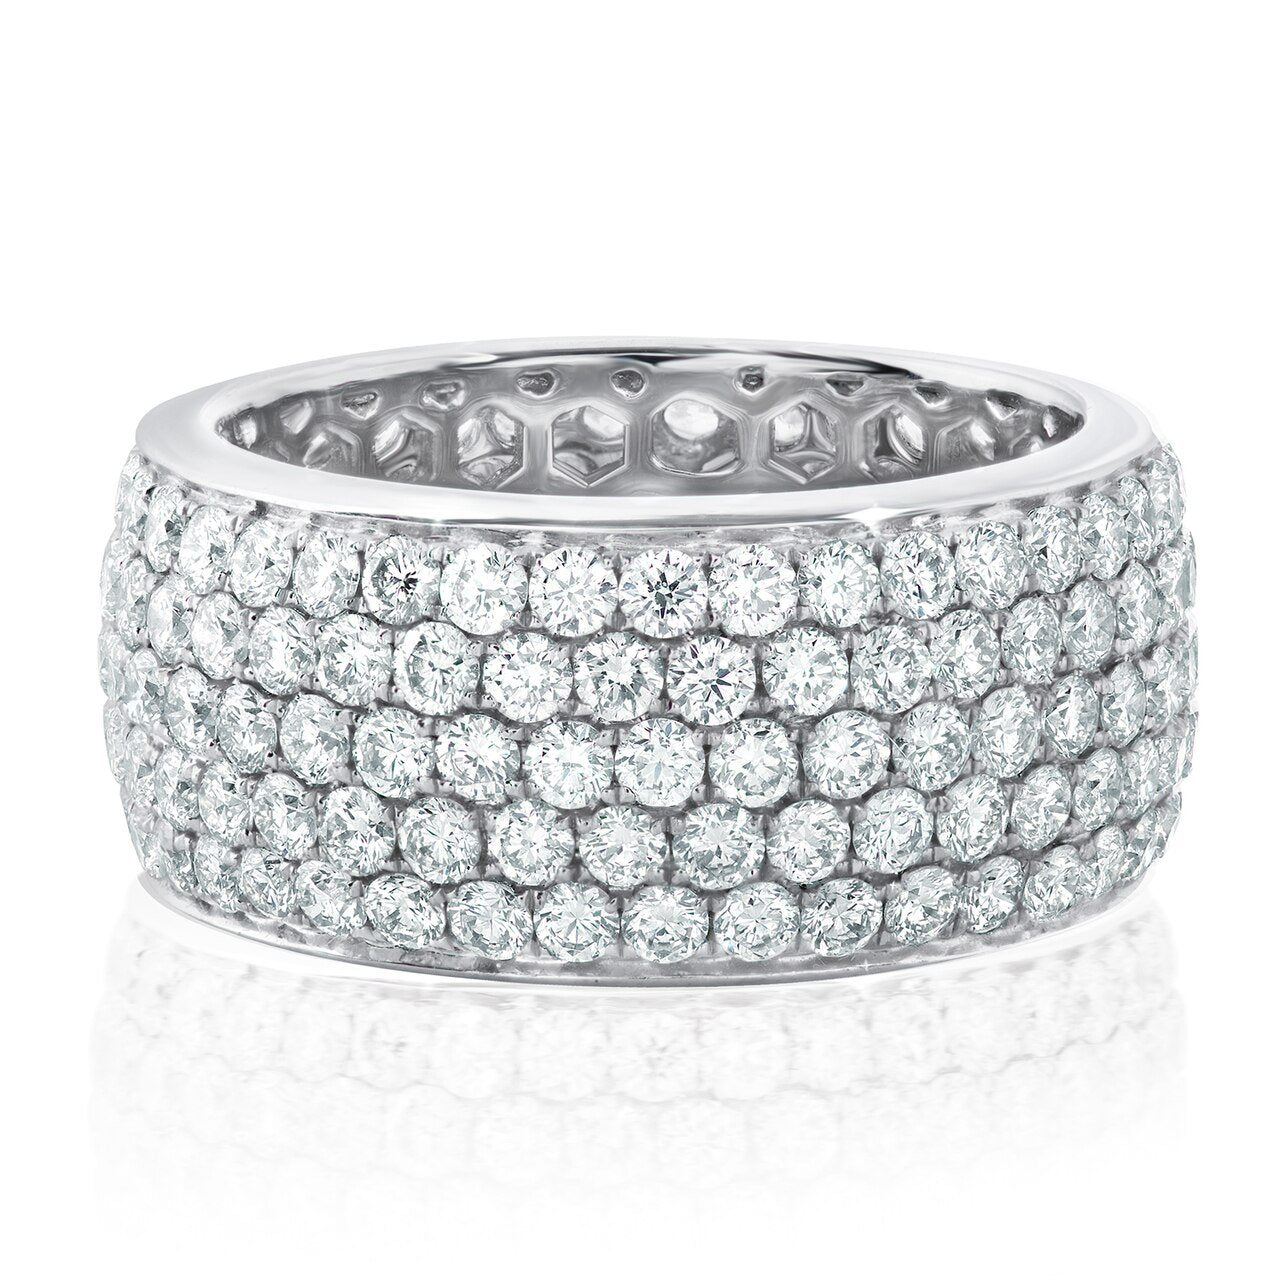 18K White Gold 5 Row Diamond Band